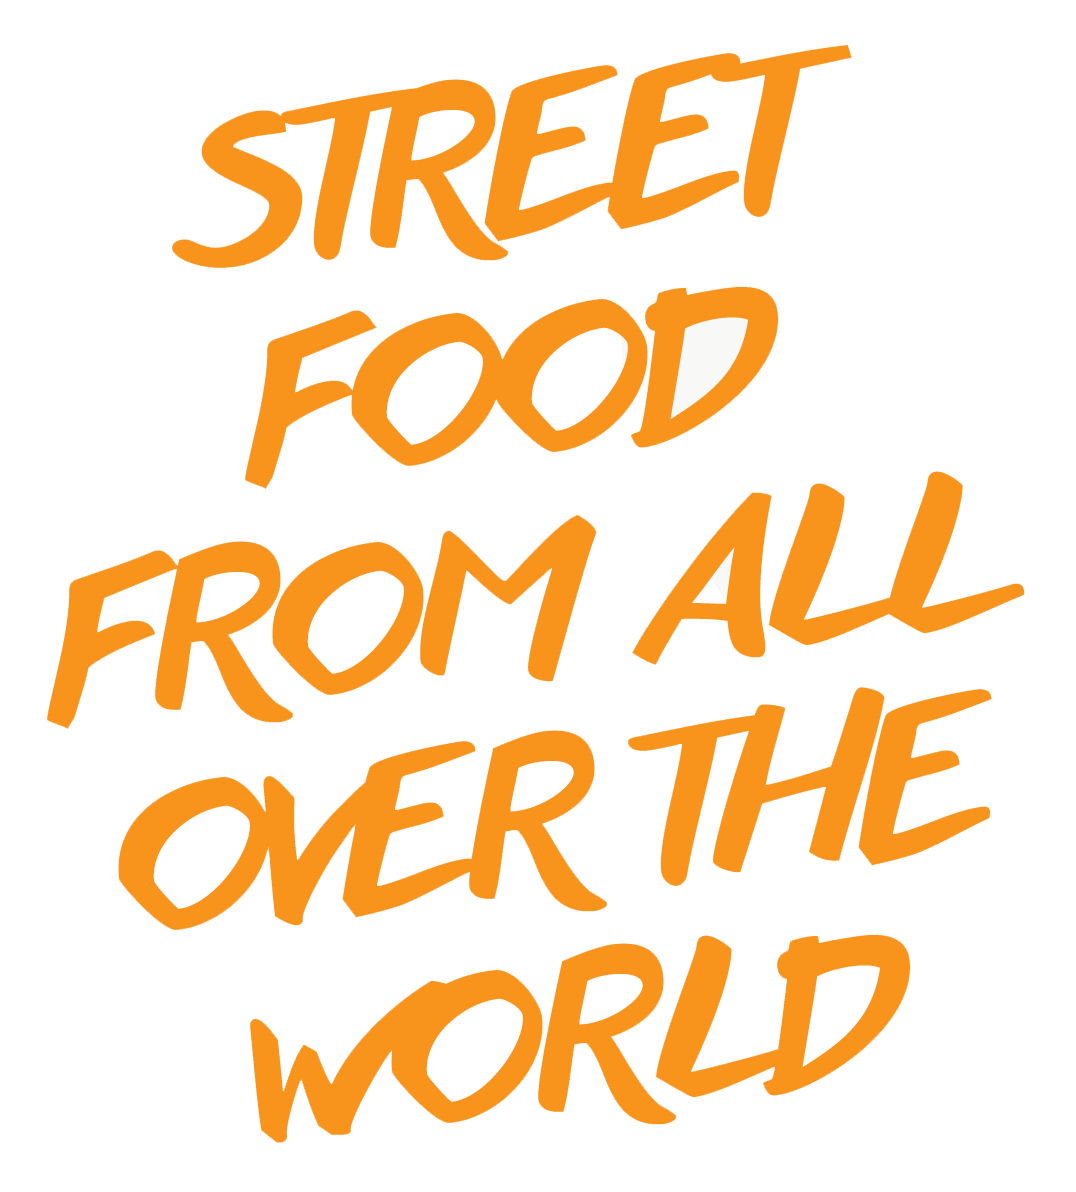 Street food from all over the world